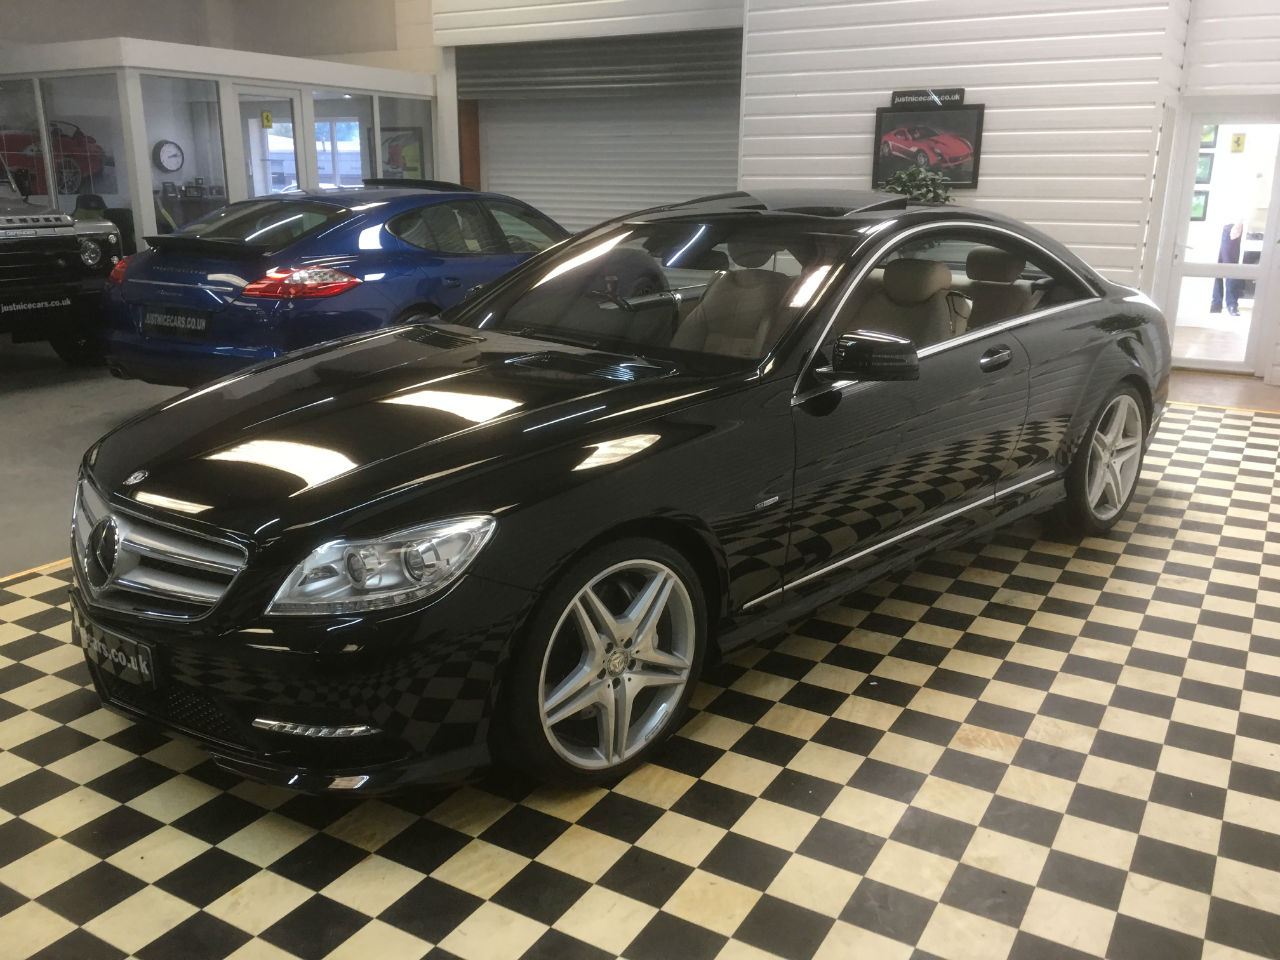 Mercedes-Benz CL CL500 4.7 V8 SOLD GOING TO ST HELENS Coupe Petrol Obsidian Black